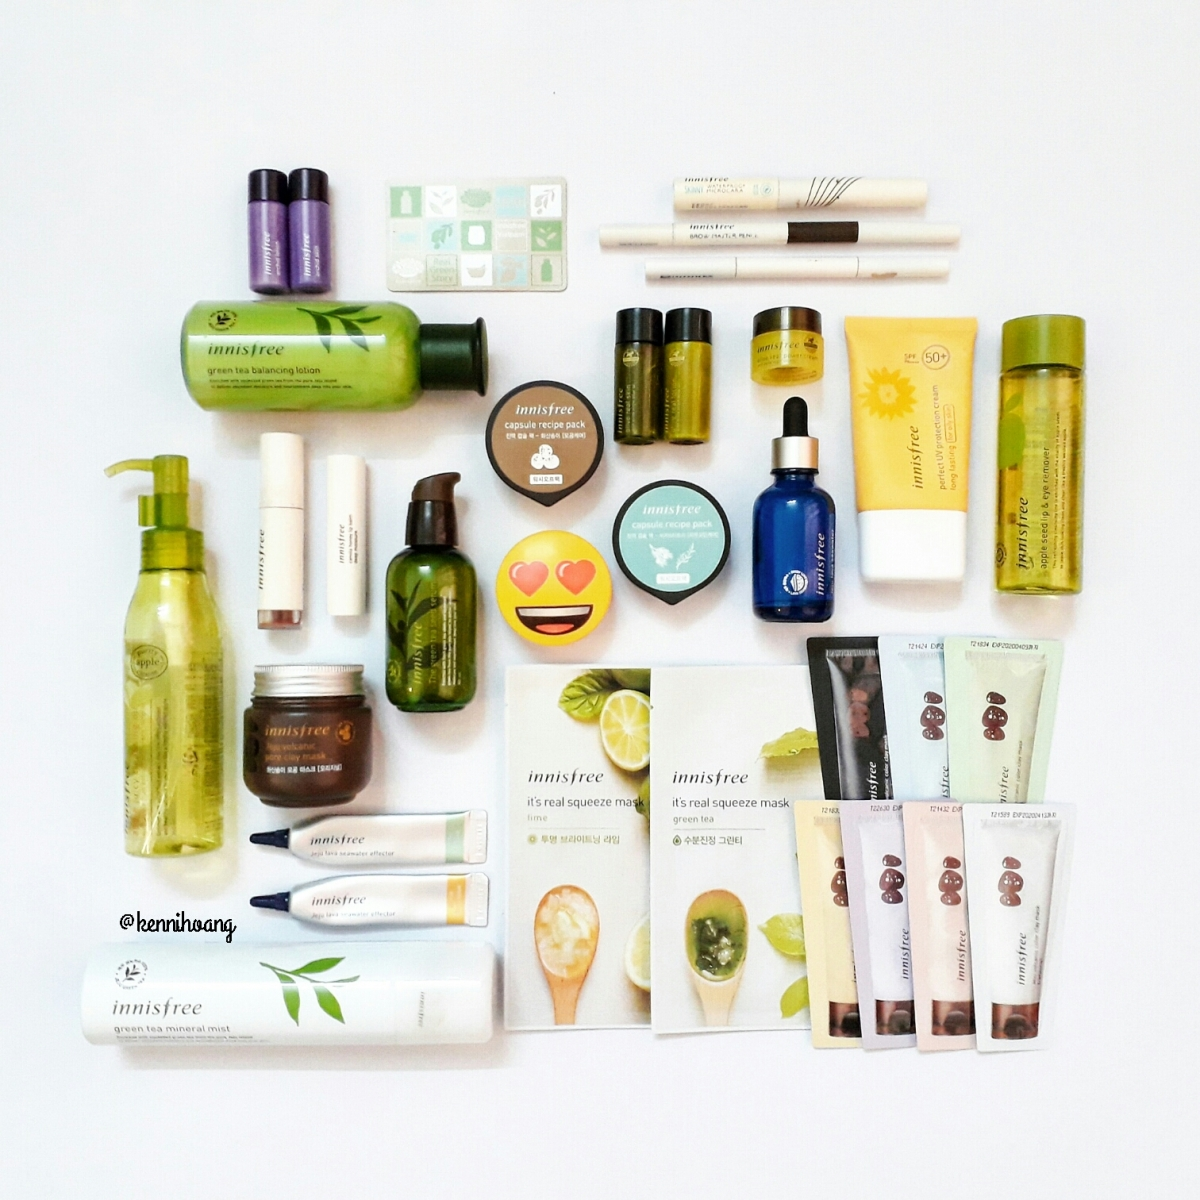 MY INNISFREE COLLECTION